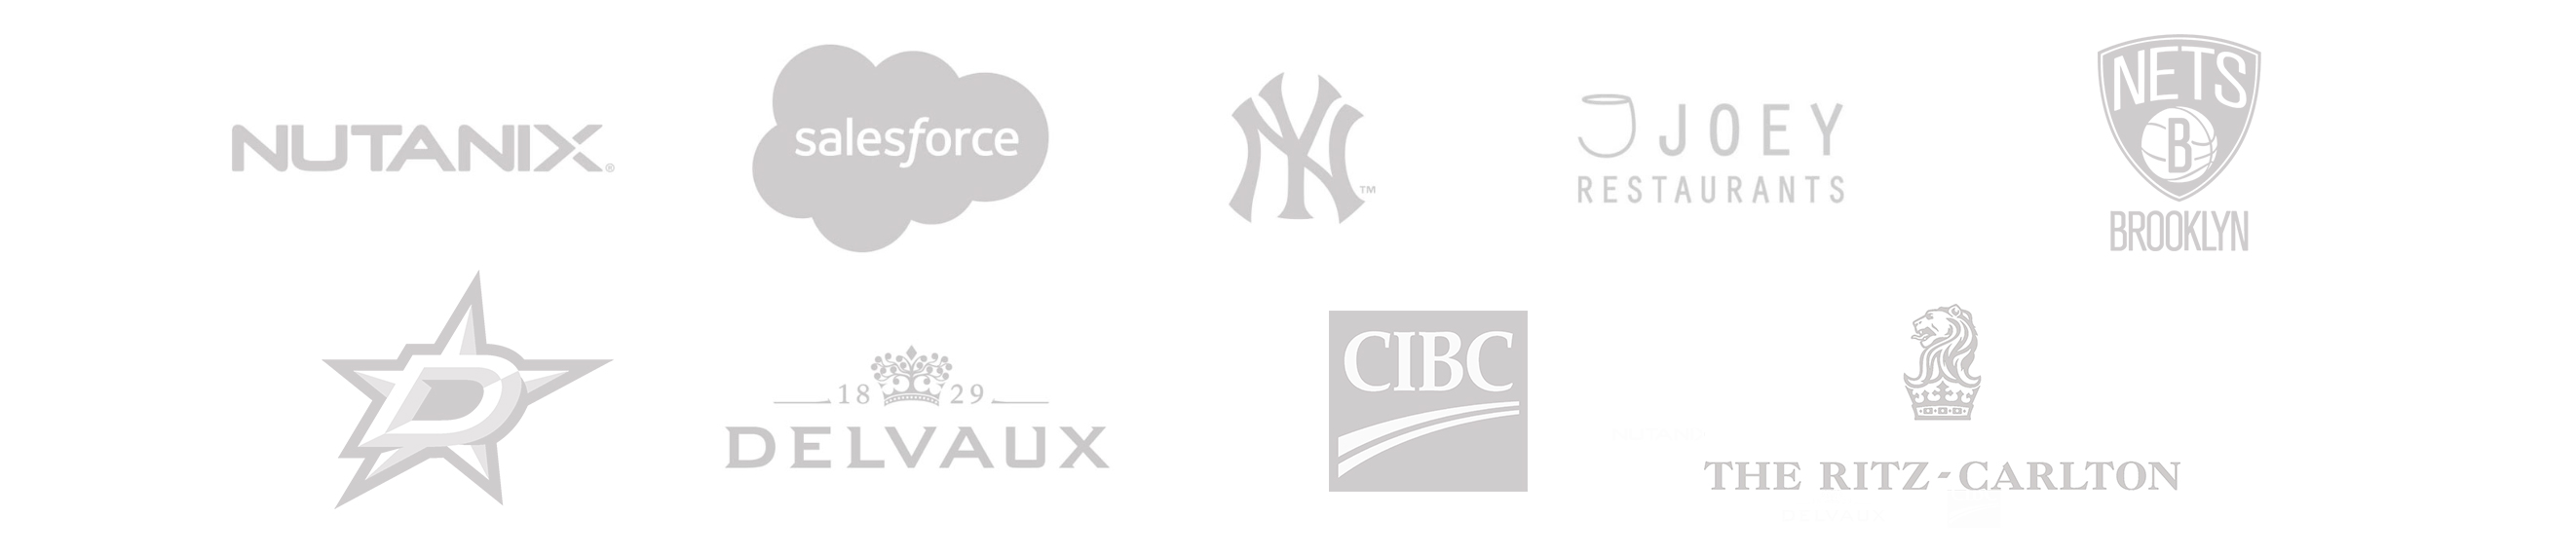 Some of those partners are: Nutanix, Salesforce, New York Yankees, Joey Resturants, BSE Global, Delvaux